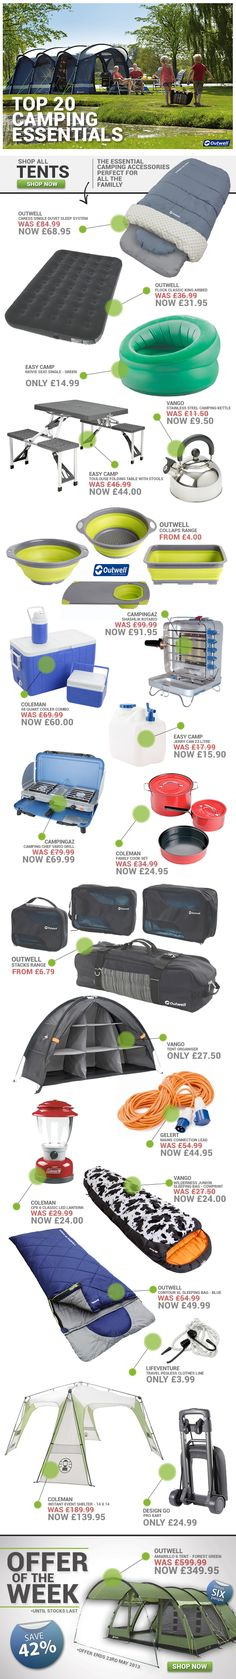 Top 20 Camping Essentials from www.simplyhike.co.uk